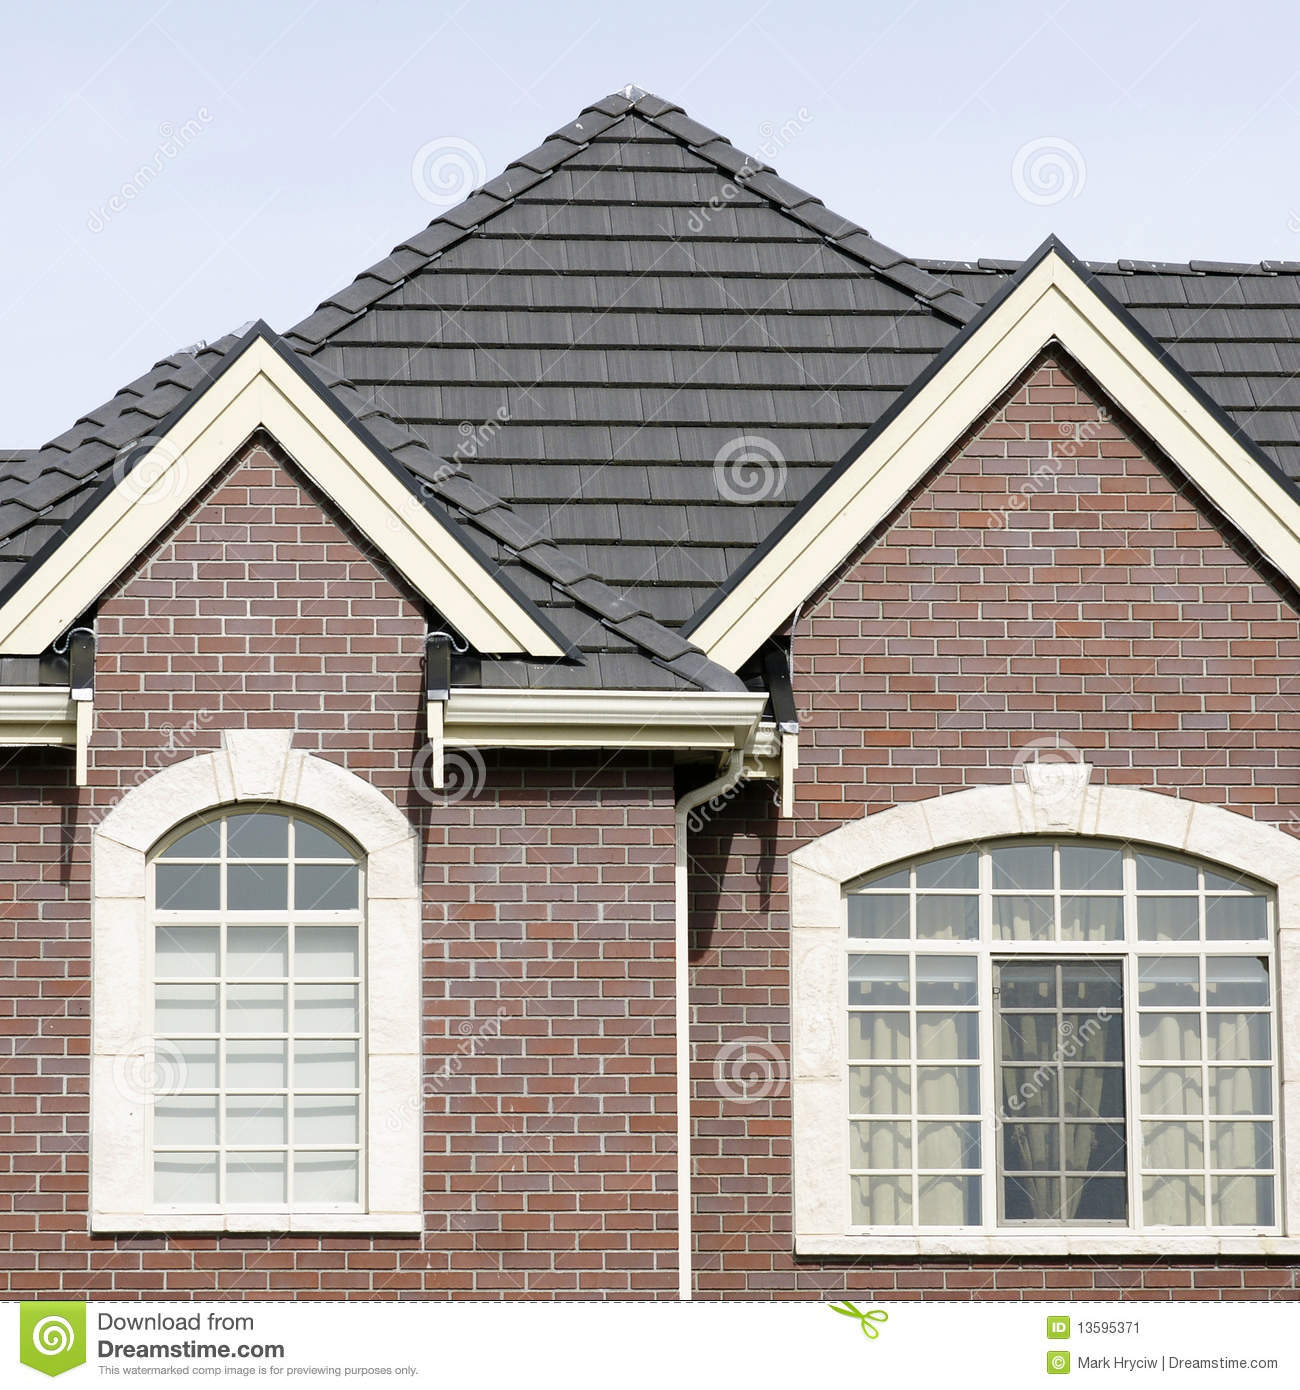 Brick house home exterior tile roof stock image image for Cupola on house